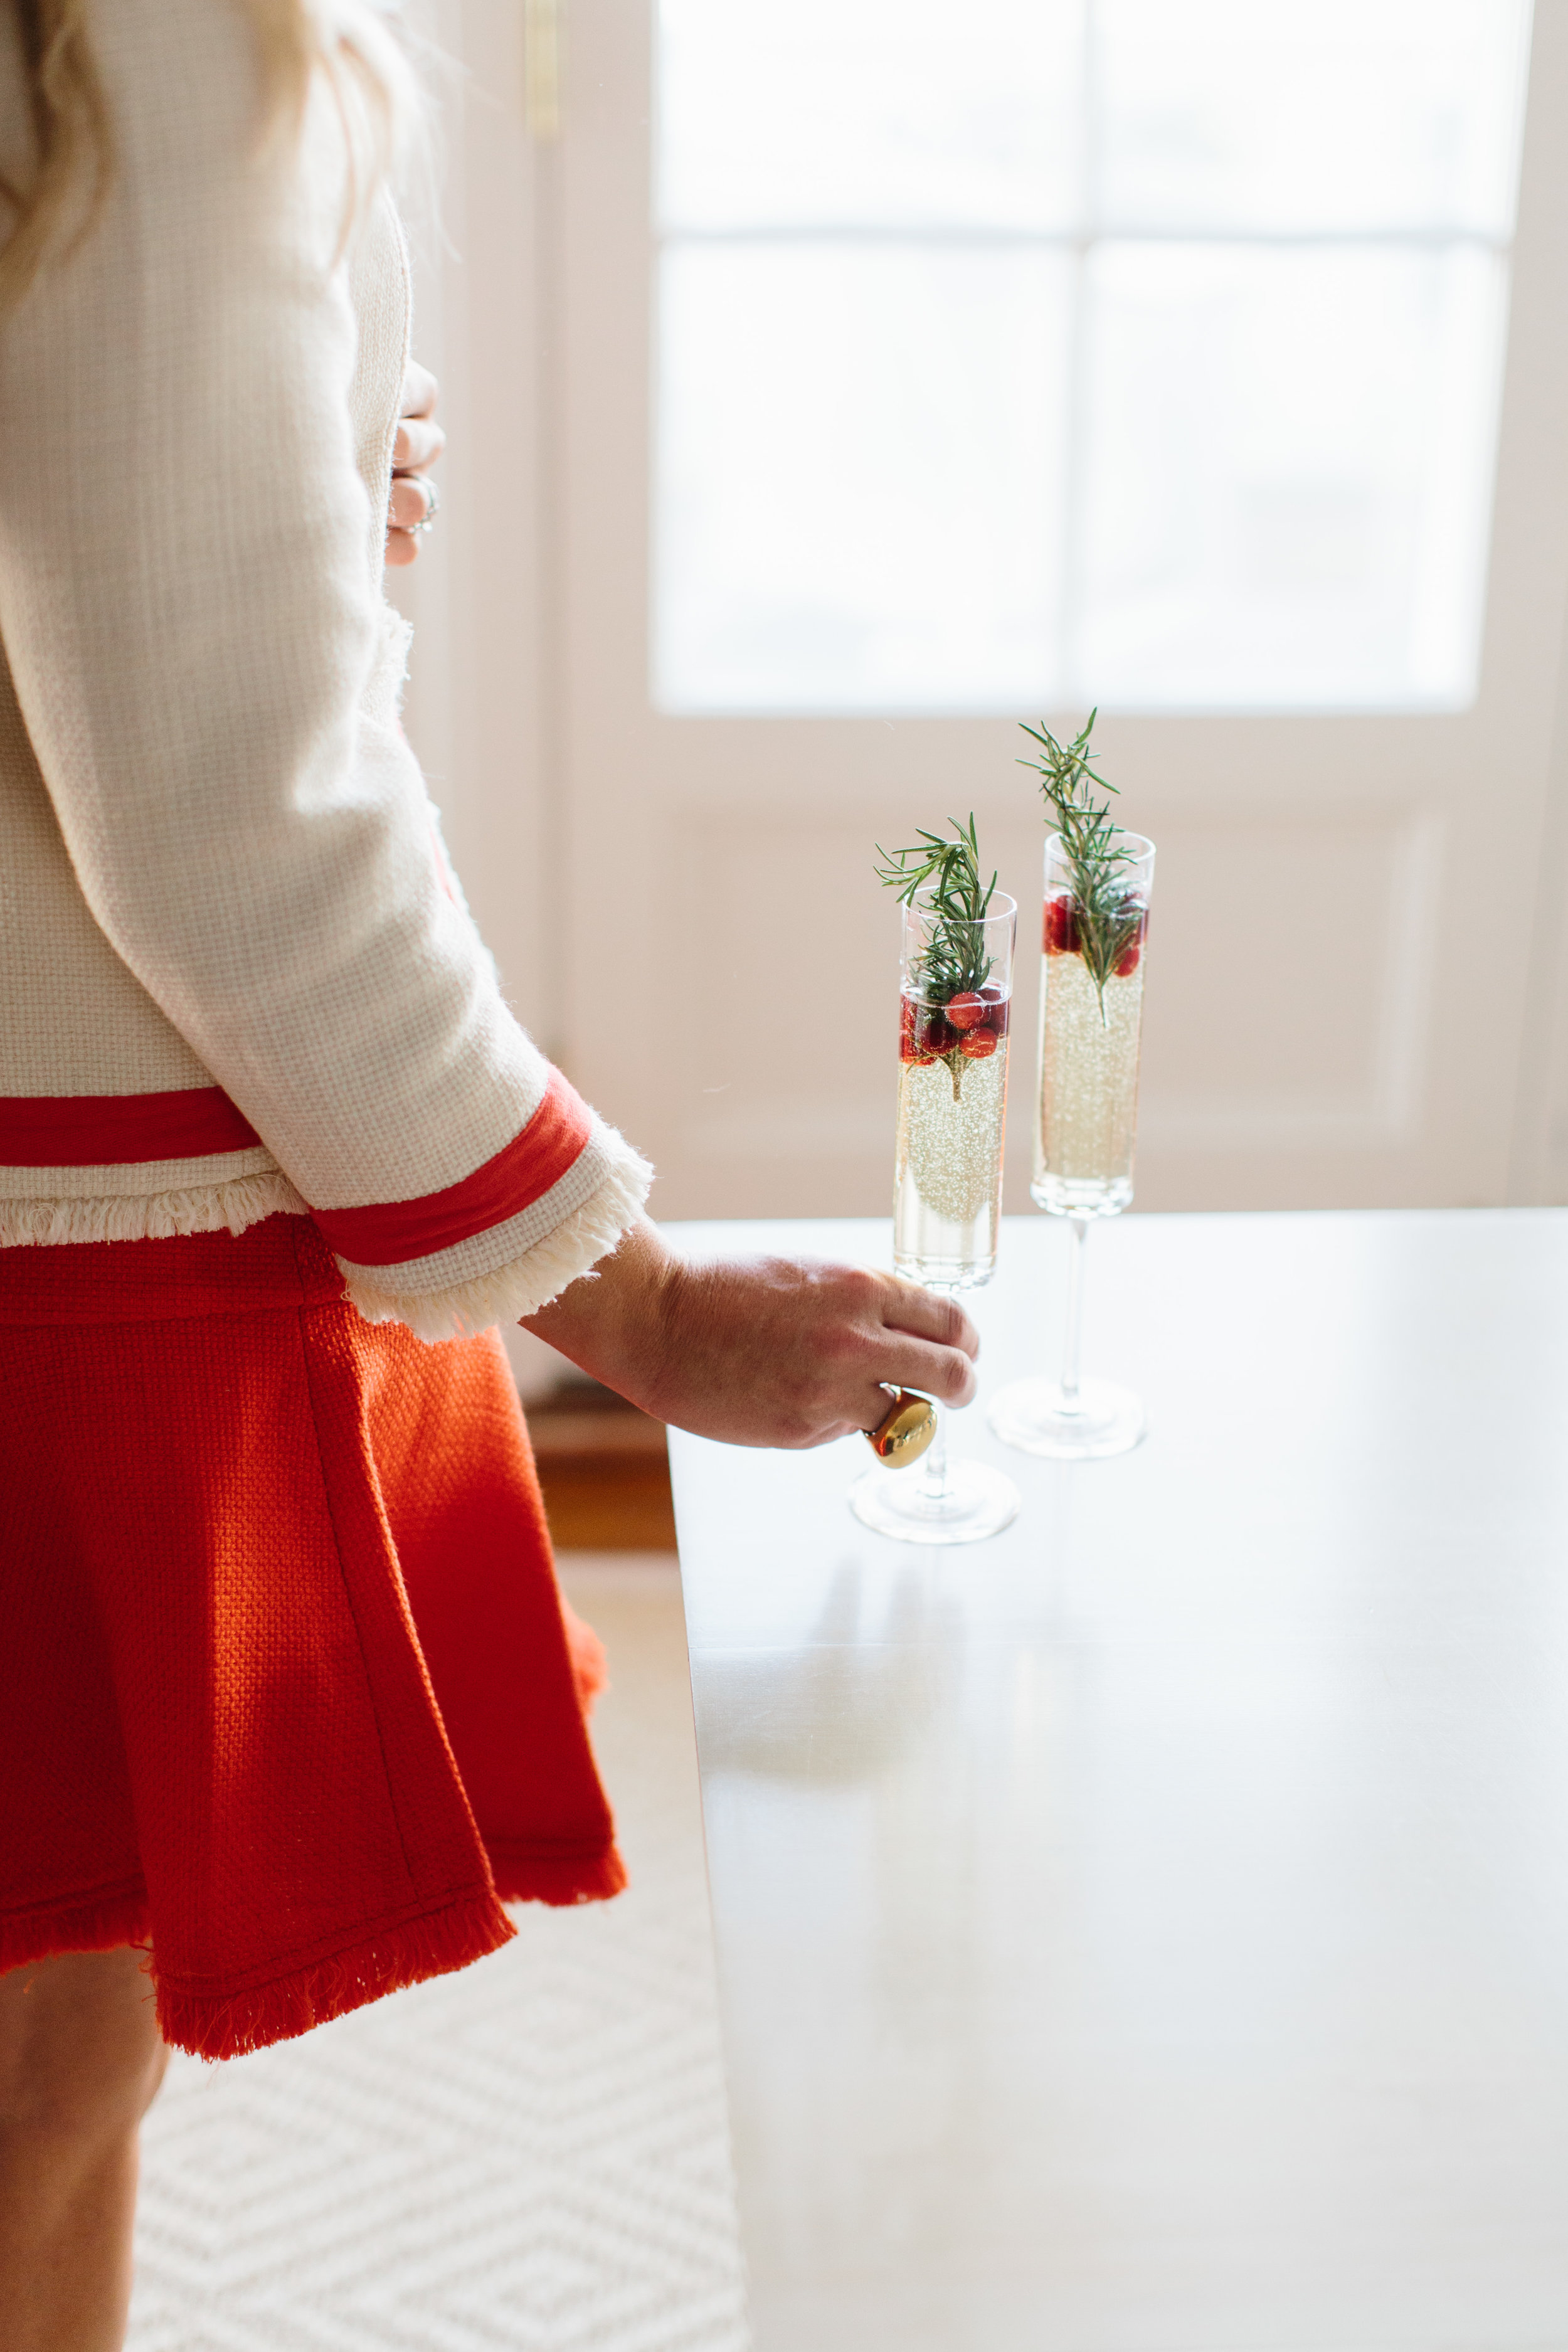 Easy Holiday Cocktails with Champagne from @abbycapalbo   photo: @erinmcginn